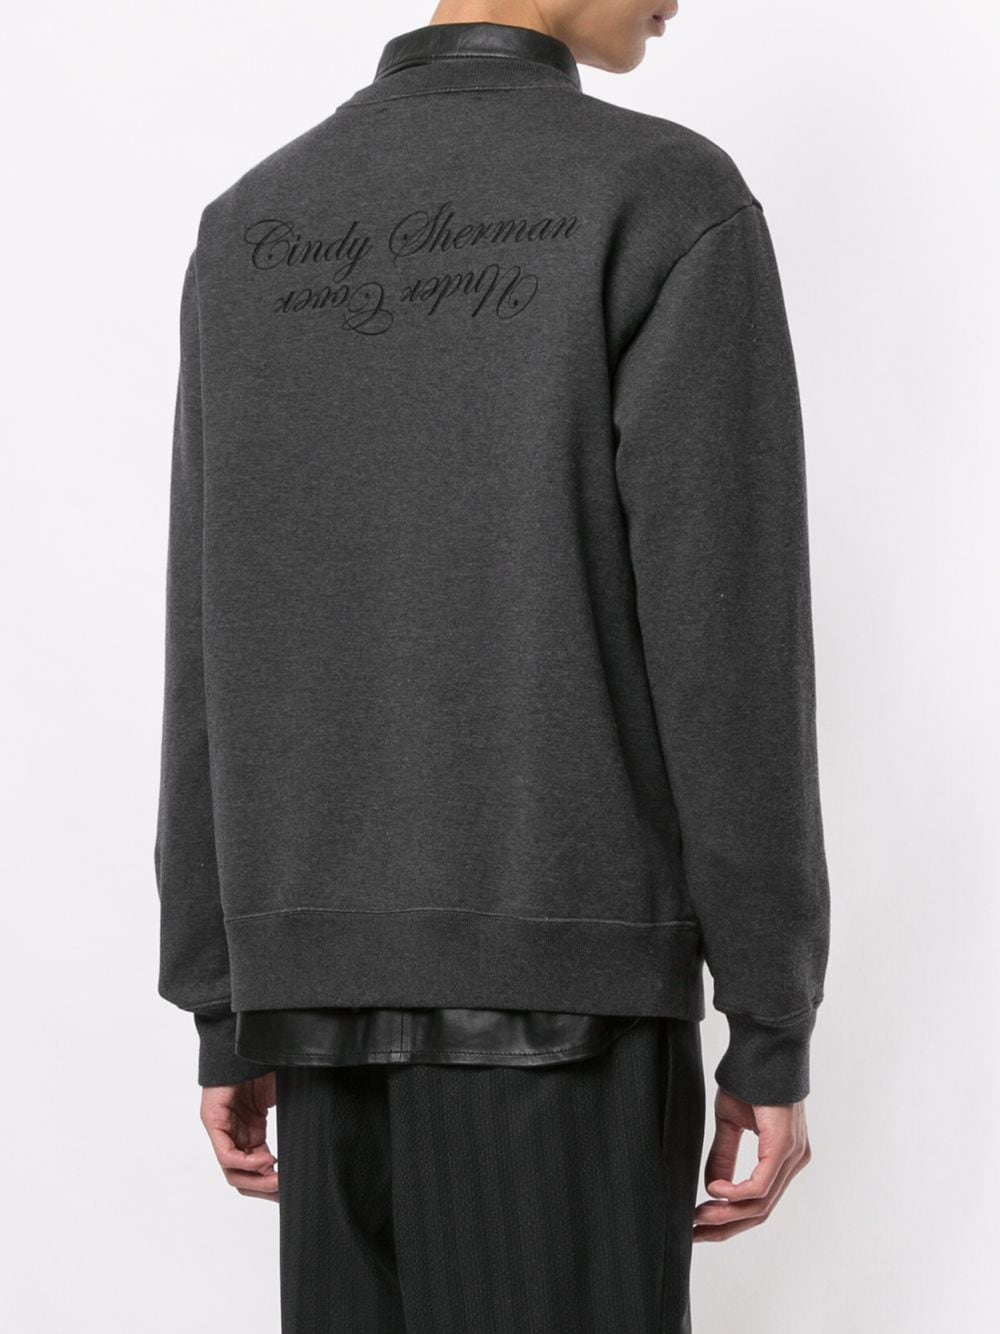 UNDERCOVER MEN CINDY SHERMAN SMOKING PULLOVER